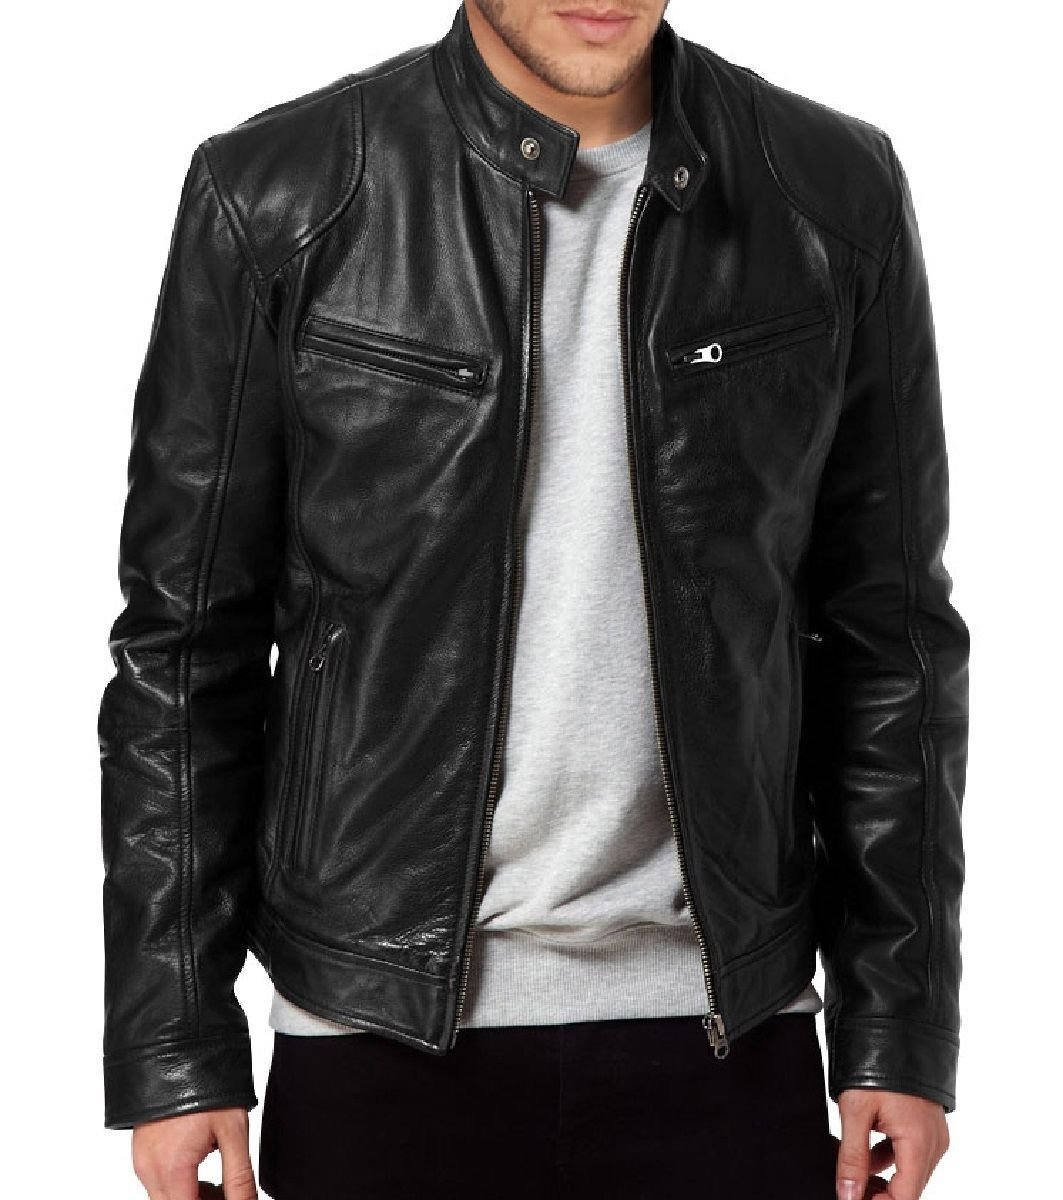 FS Lambskin Leather Men's Bomber Biker Jacket Large Black by Fashion Store